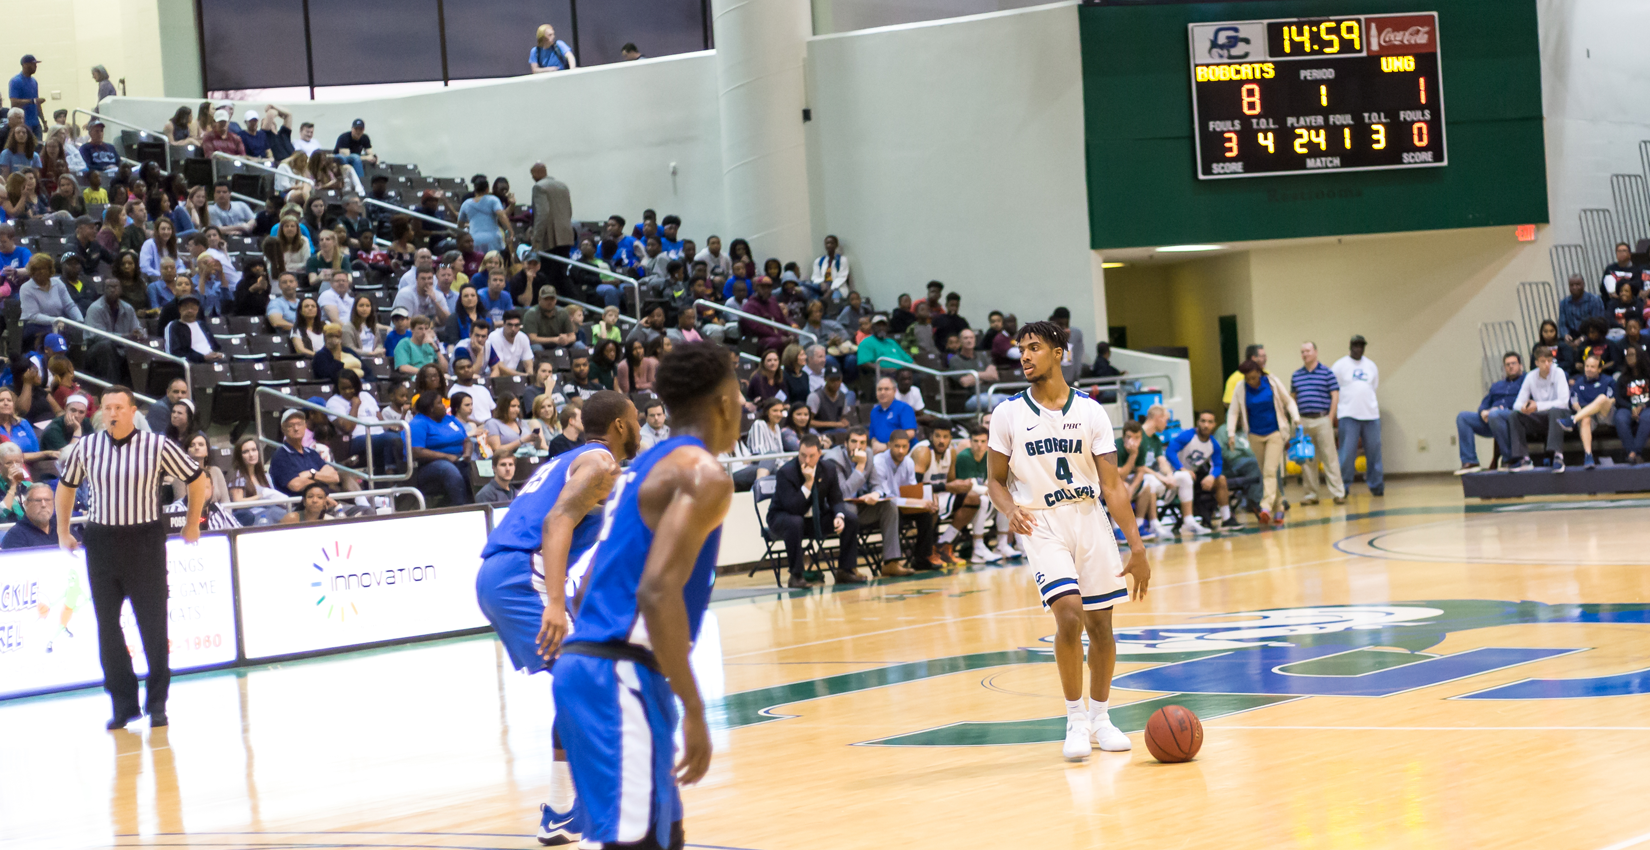 Bobcat Men's Basketball Drops Neutral Site Contest to Erskine, 66-62